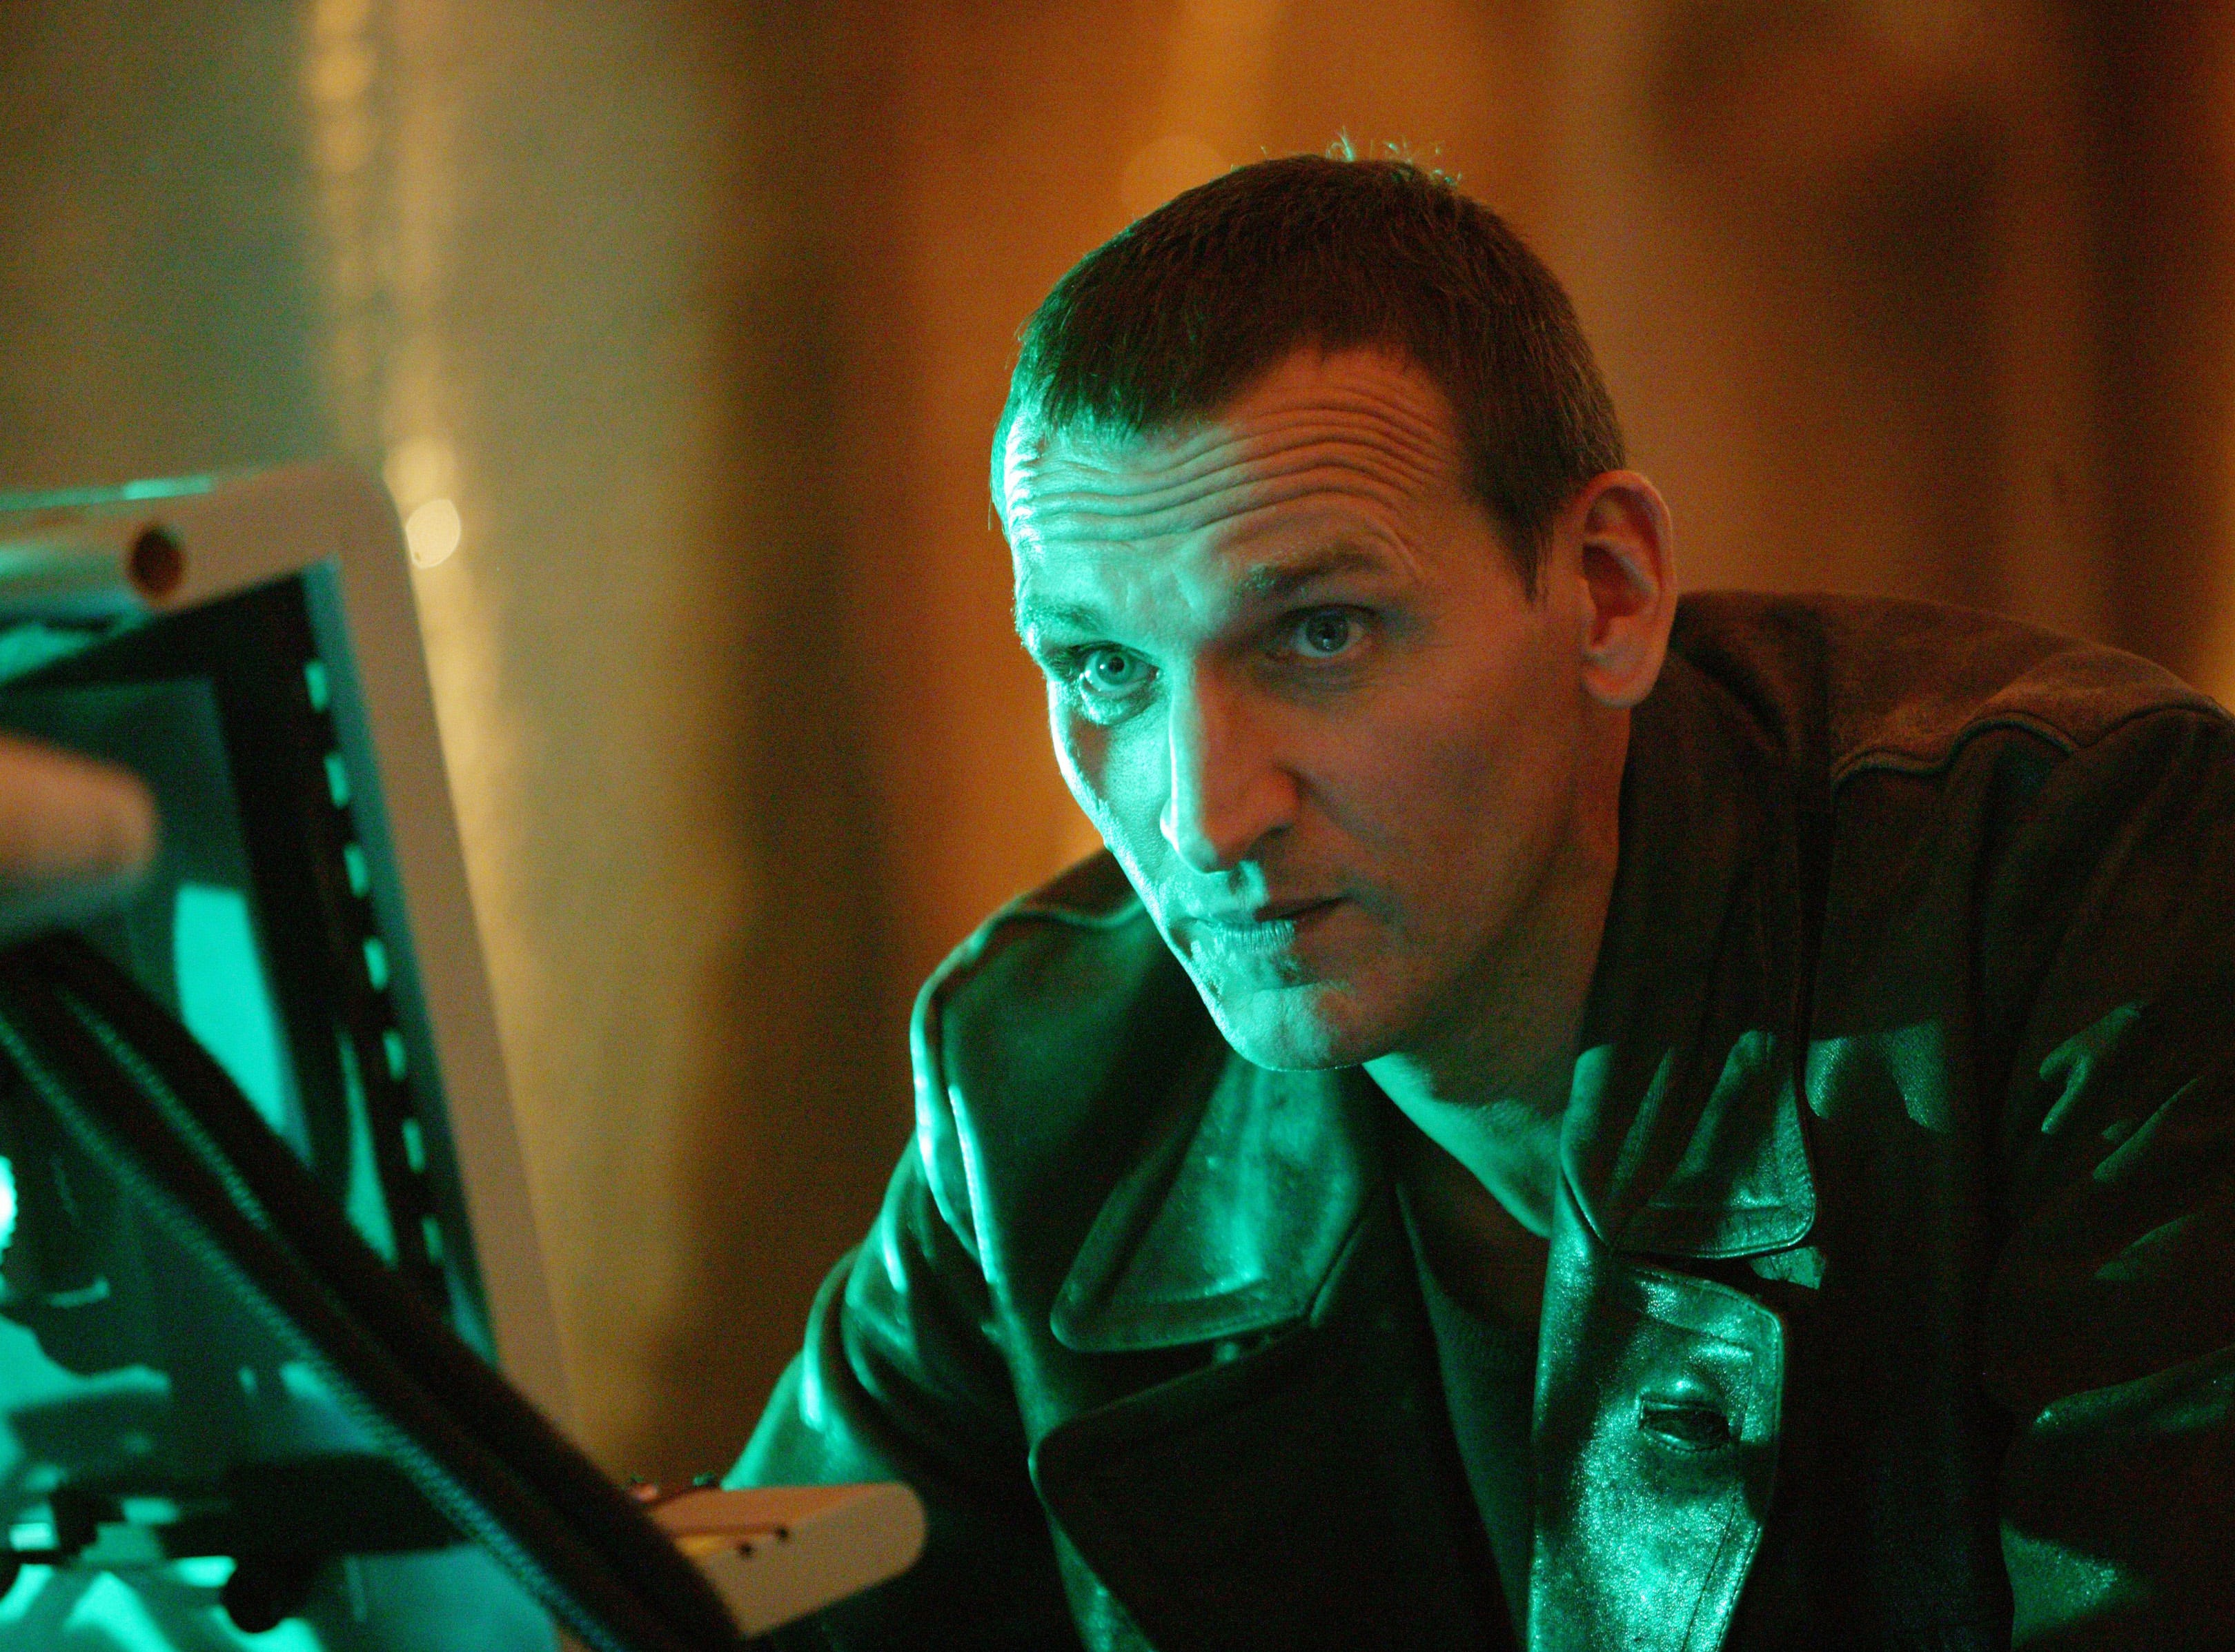 """Christopher Eccleston was the Ninth Doctor, taking over the rebooted show in 2005 after the series had been off the air for more than 15 years. Eccleston left after only one season, and since then, is best known as Malekith in 2013's """"Thor: The Dark World."""""""